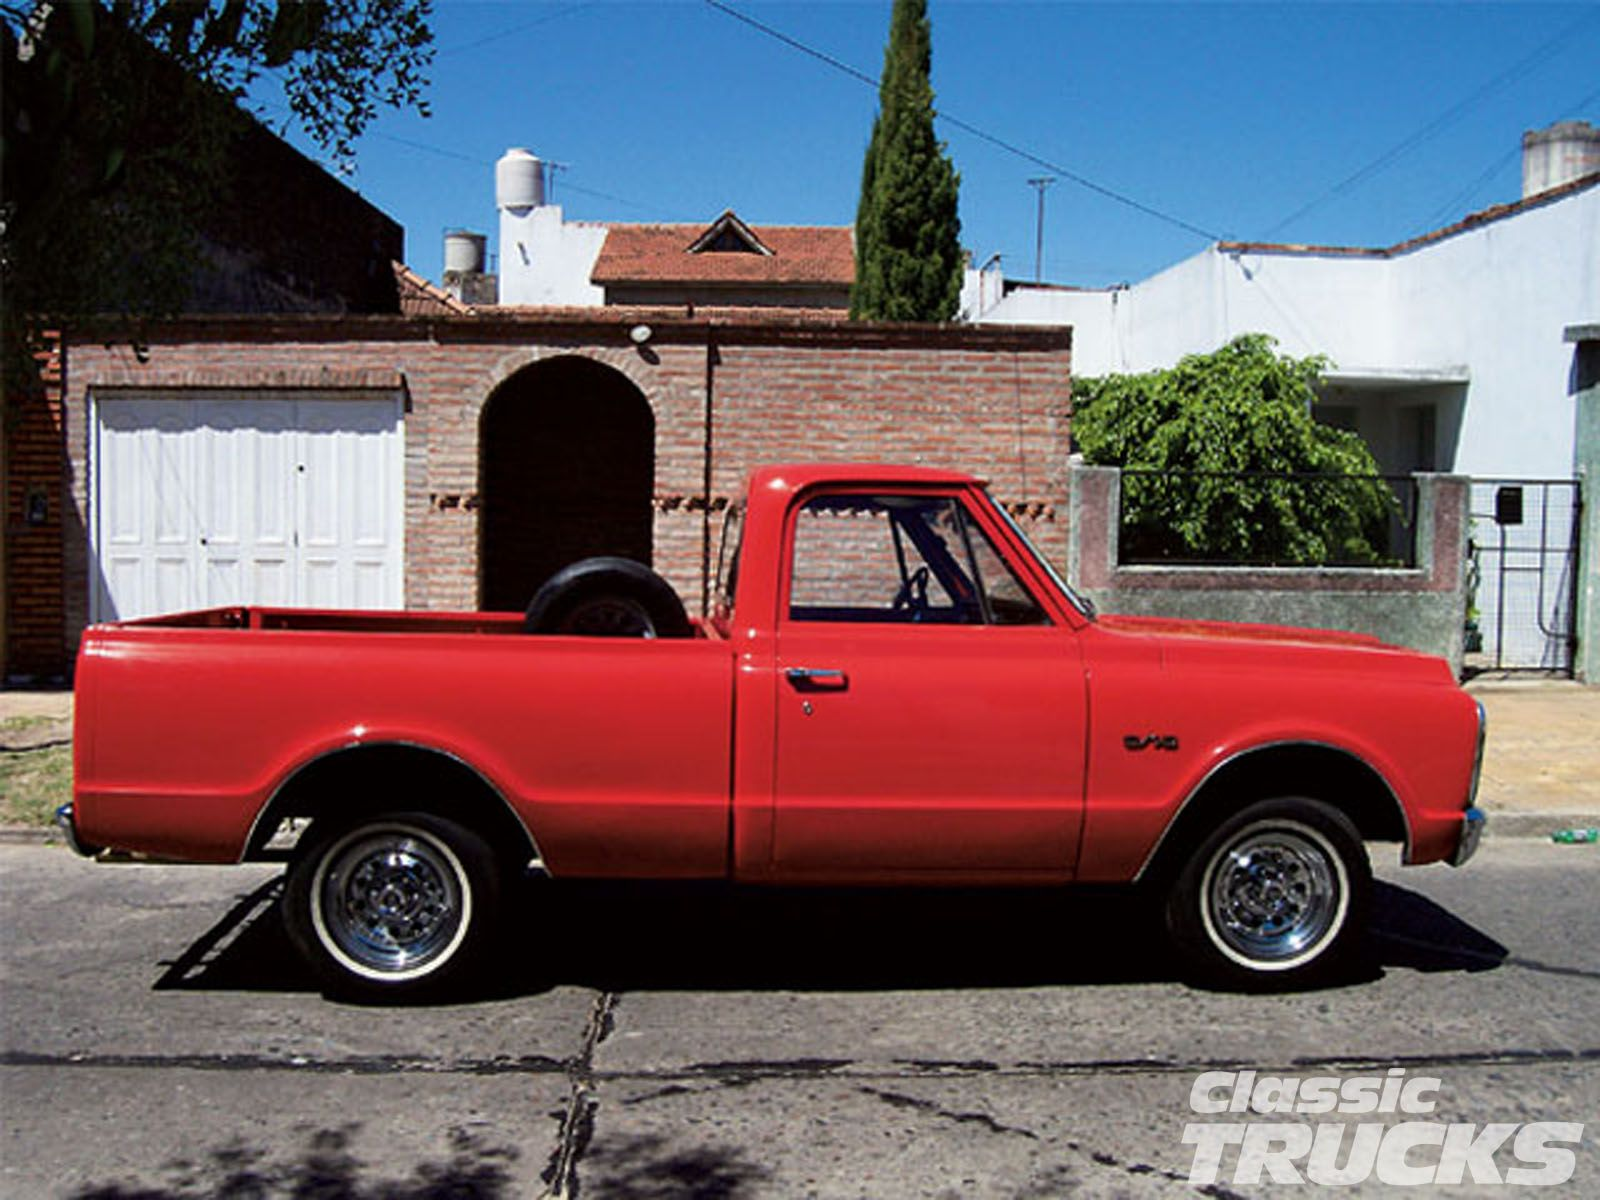 Old Pickup Trucks   1966 Chevy C10 Pickup Truck Low Profile Tires ...